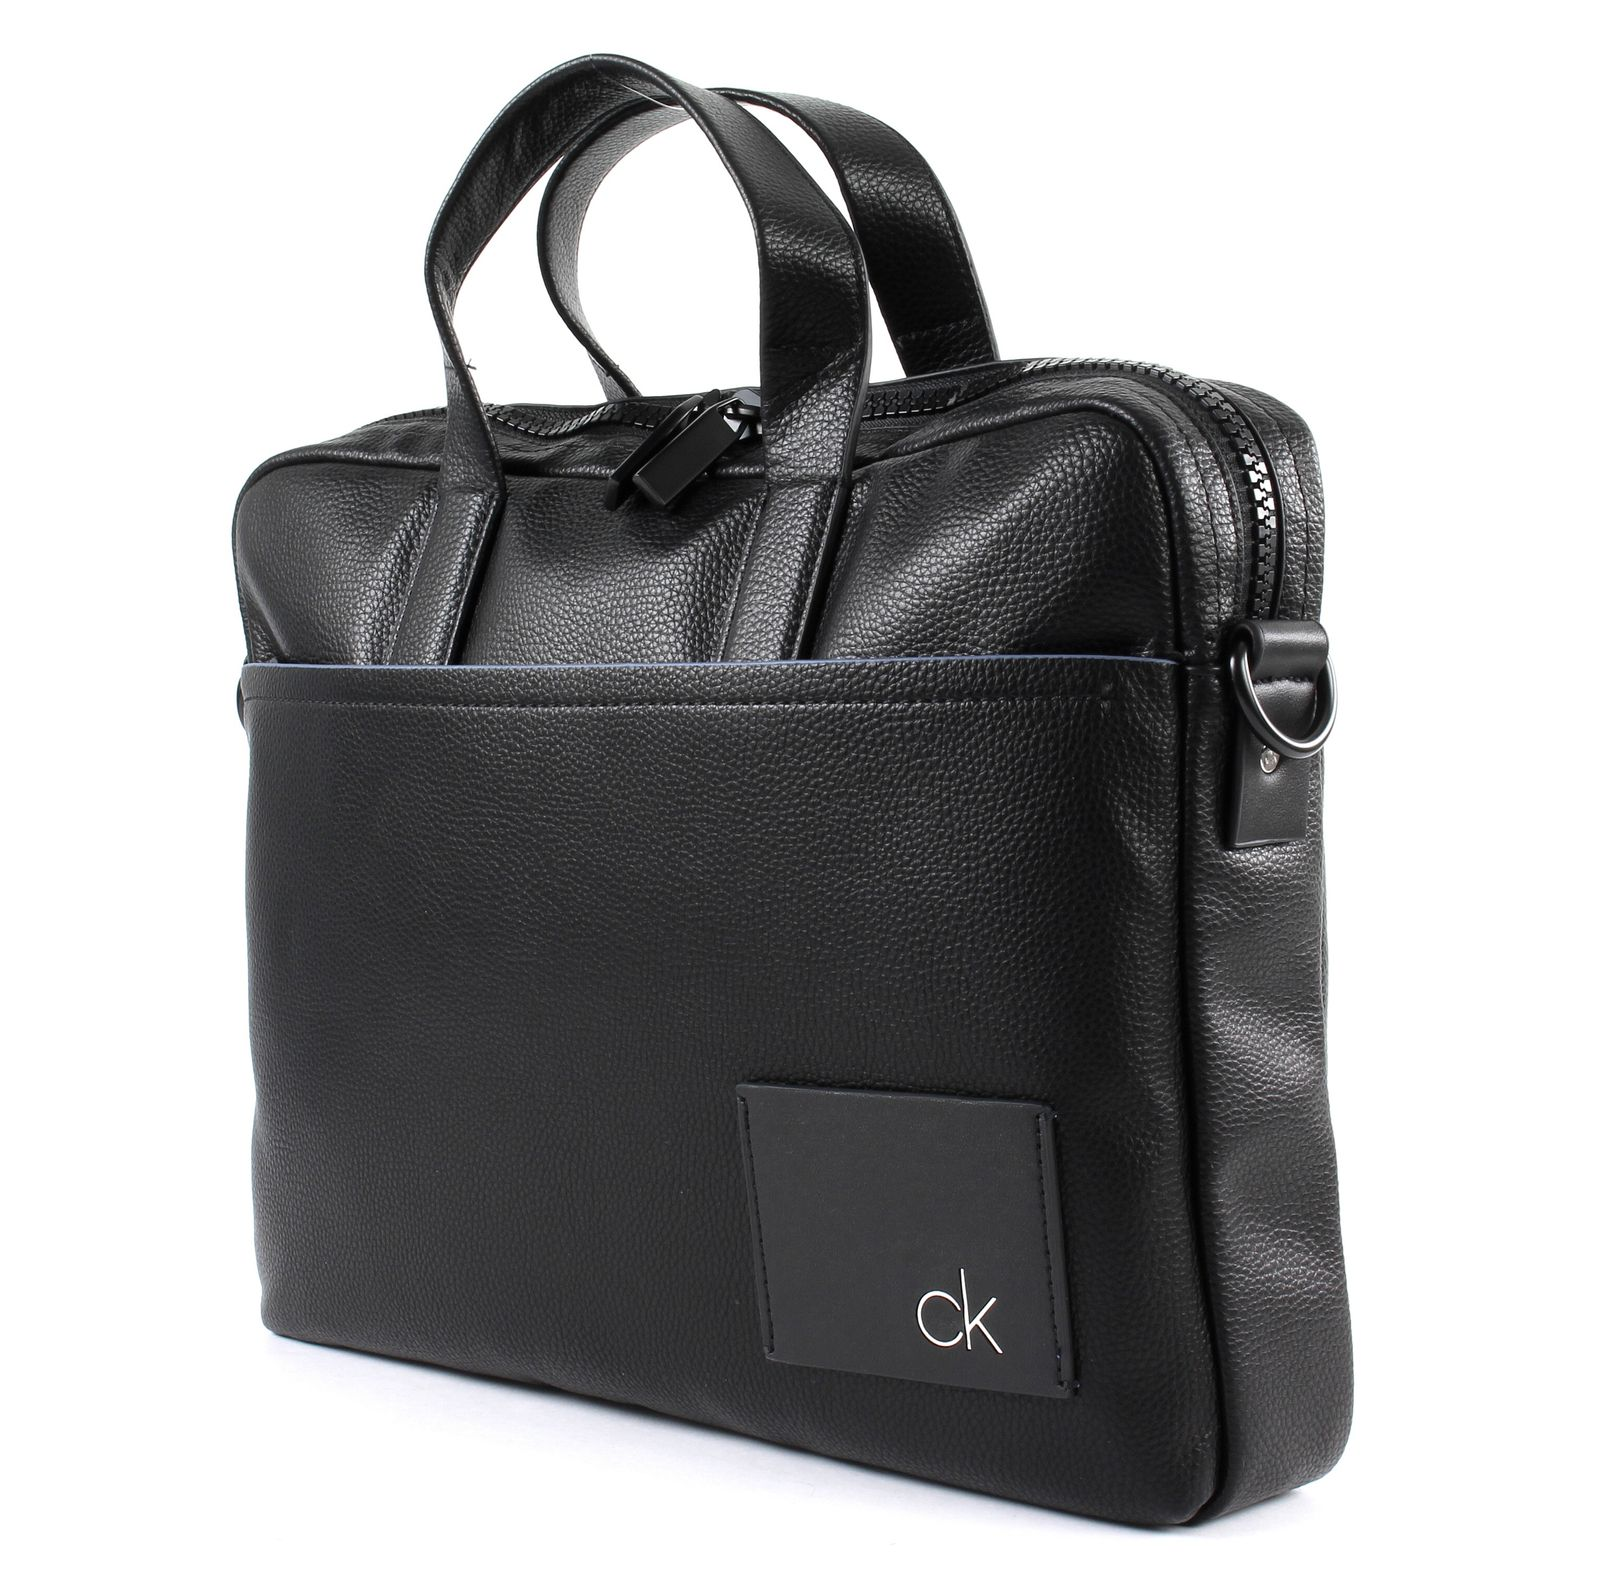 fb57cdfc2bb ... CloseCalvin Klein CK Direct Slim Laptop Bag Black / 95,92 €*Tap To  CloseOnly possible if you pay by Paypal, Amazon Payments, Credit Card, ...